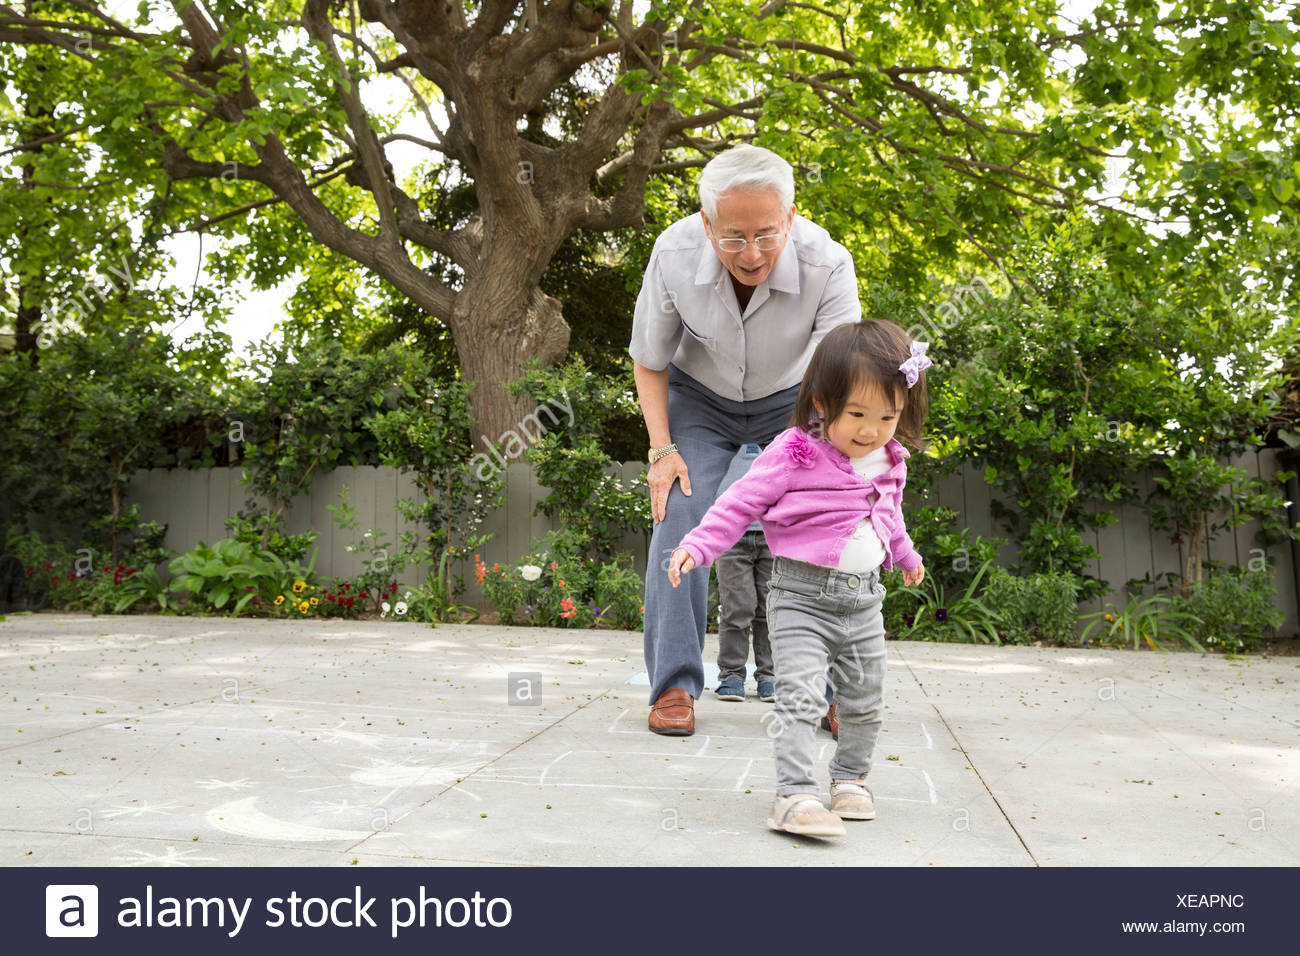 Grandfather playing hopscotch with toddler granddaughter - Stock Image